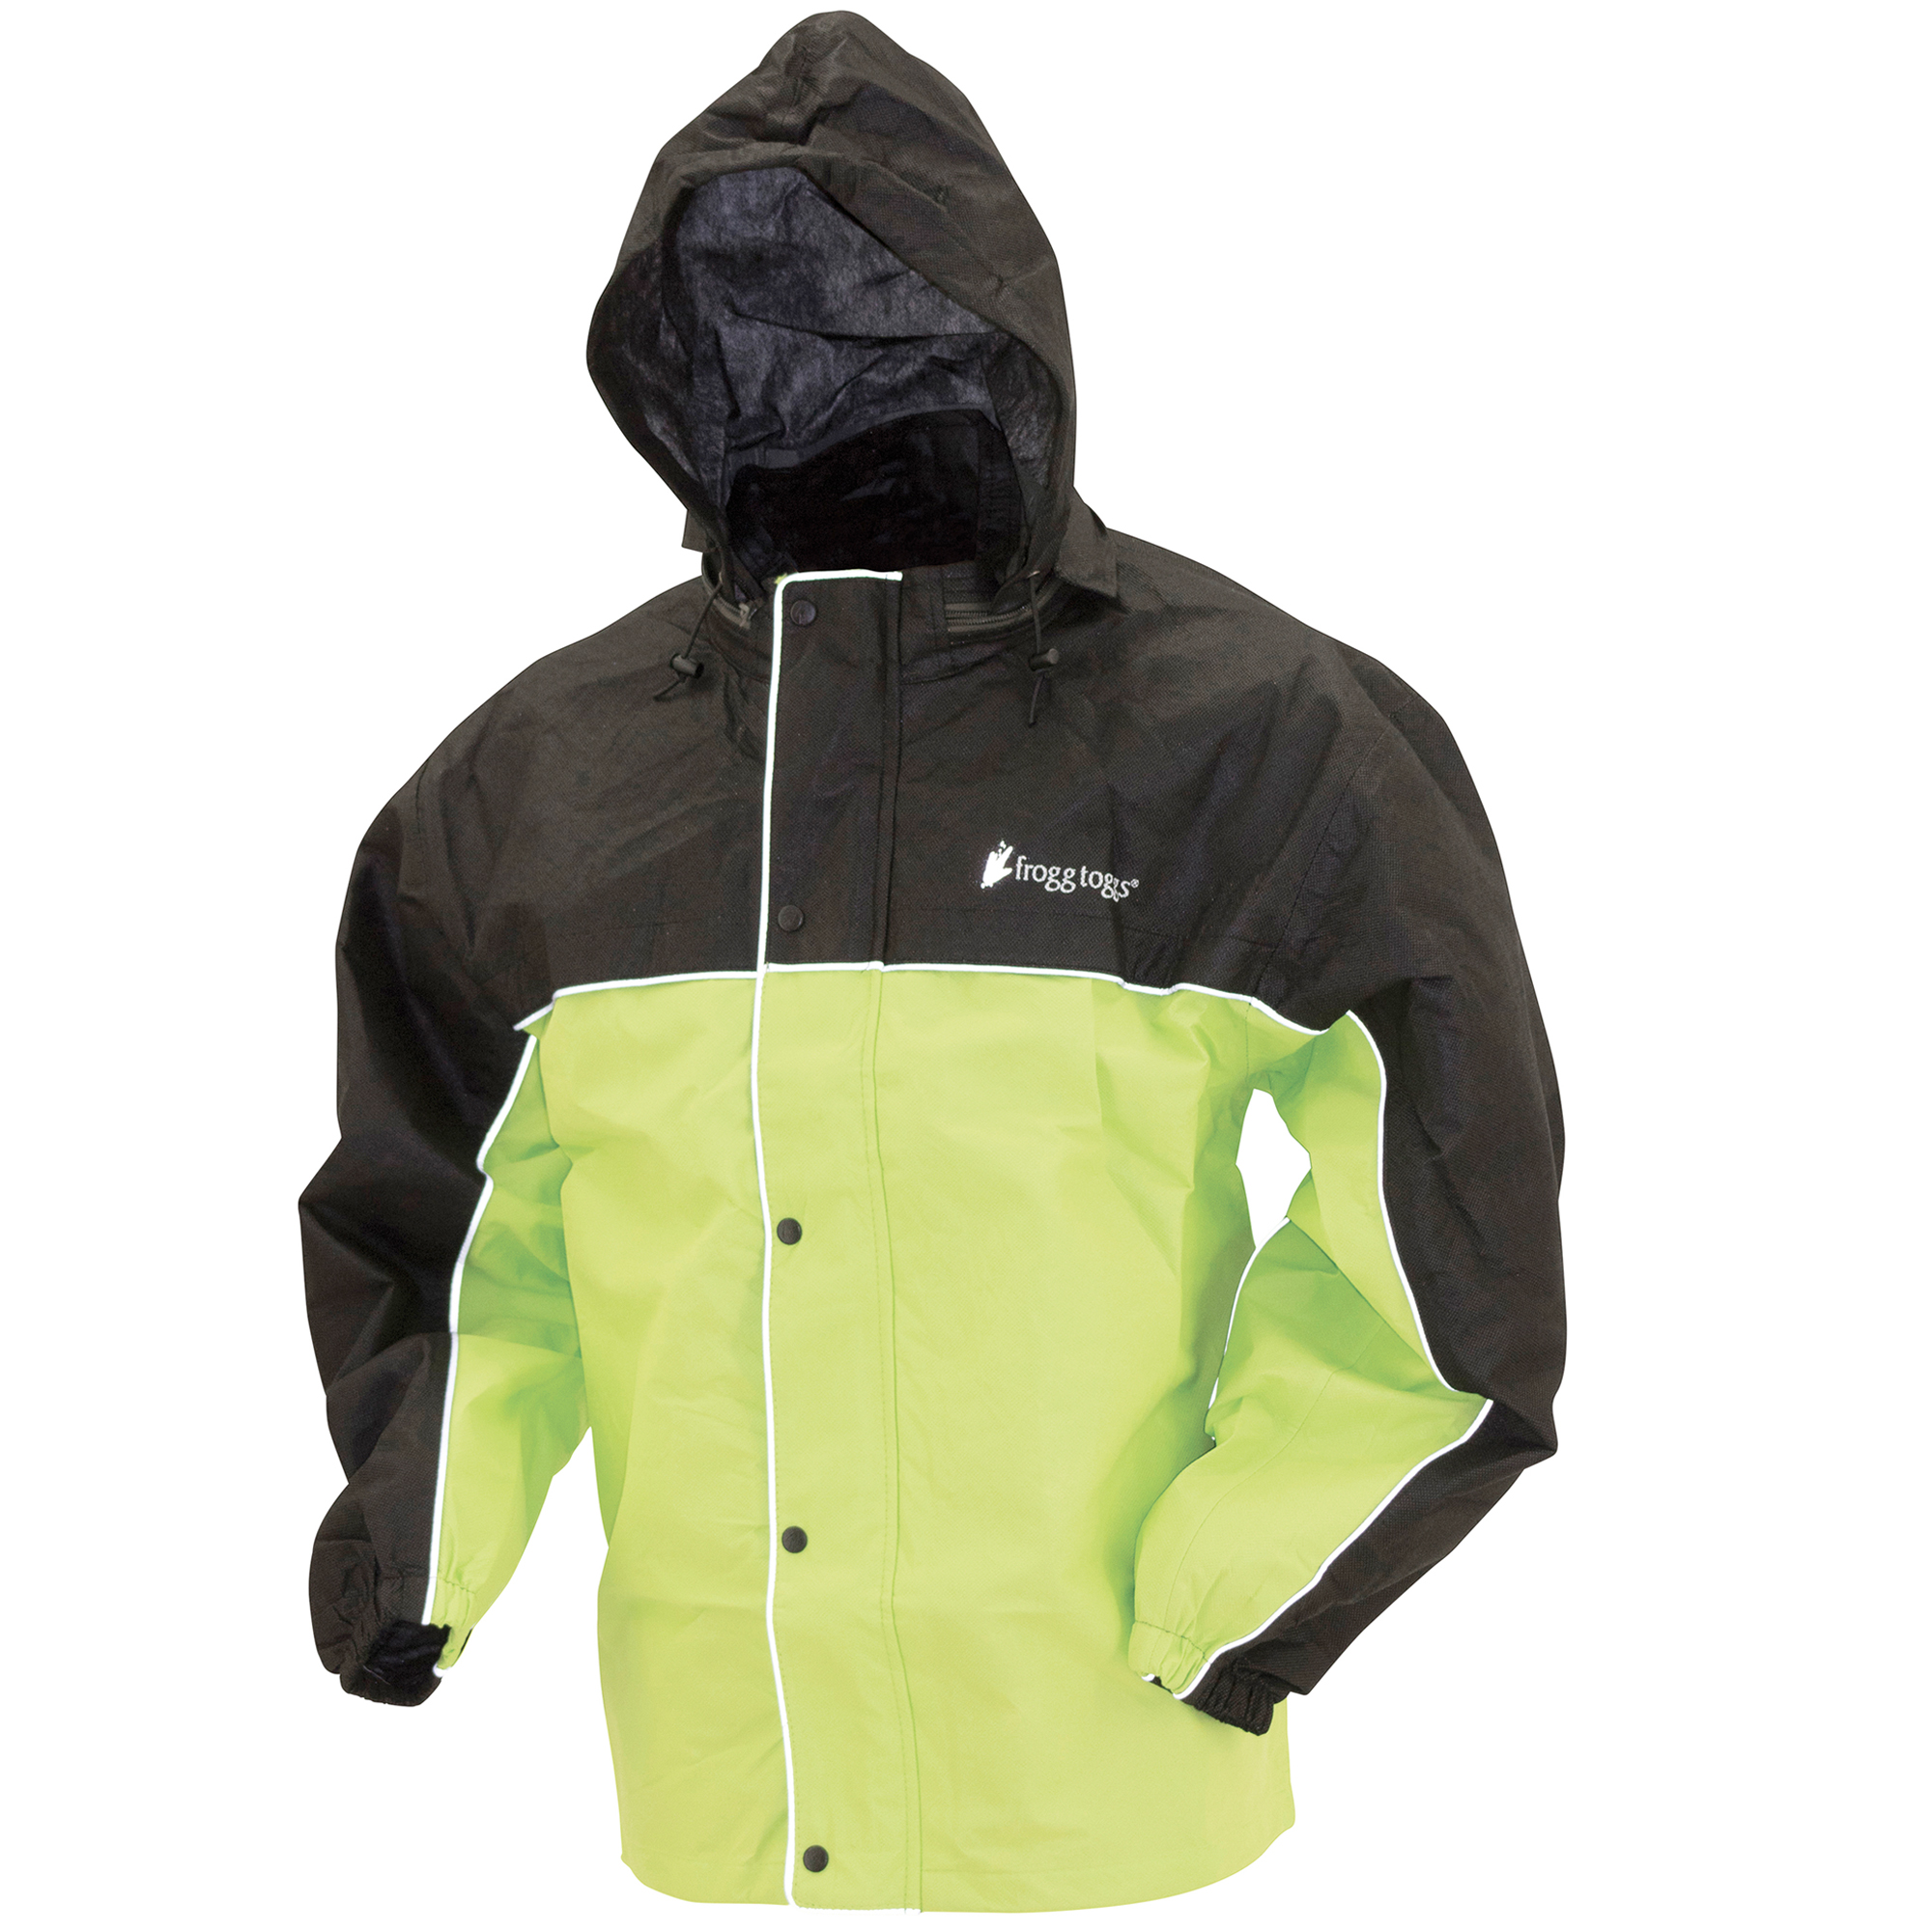 Frogg Toggs Road Toad Reflective Motorcycle Rain Jacket HiVis Green & Black SM